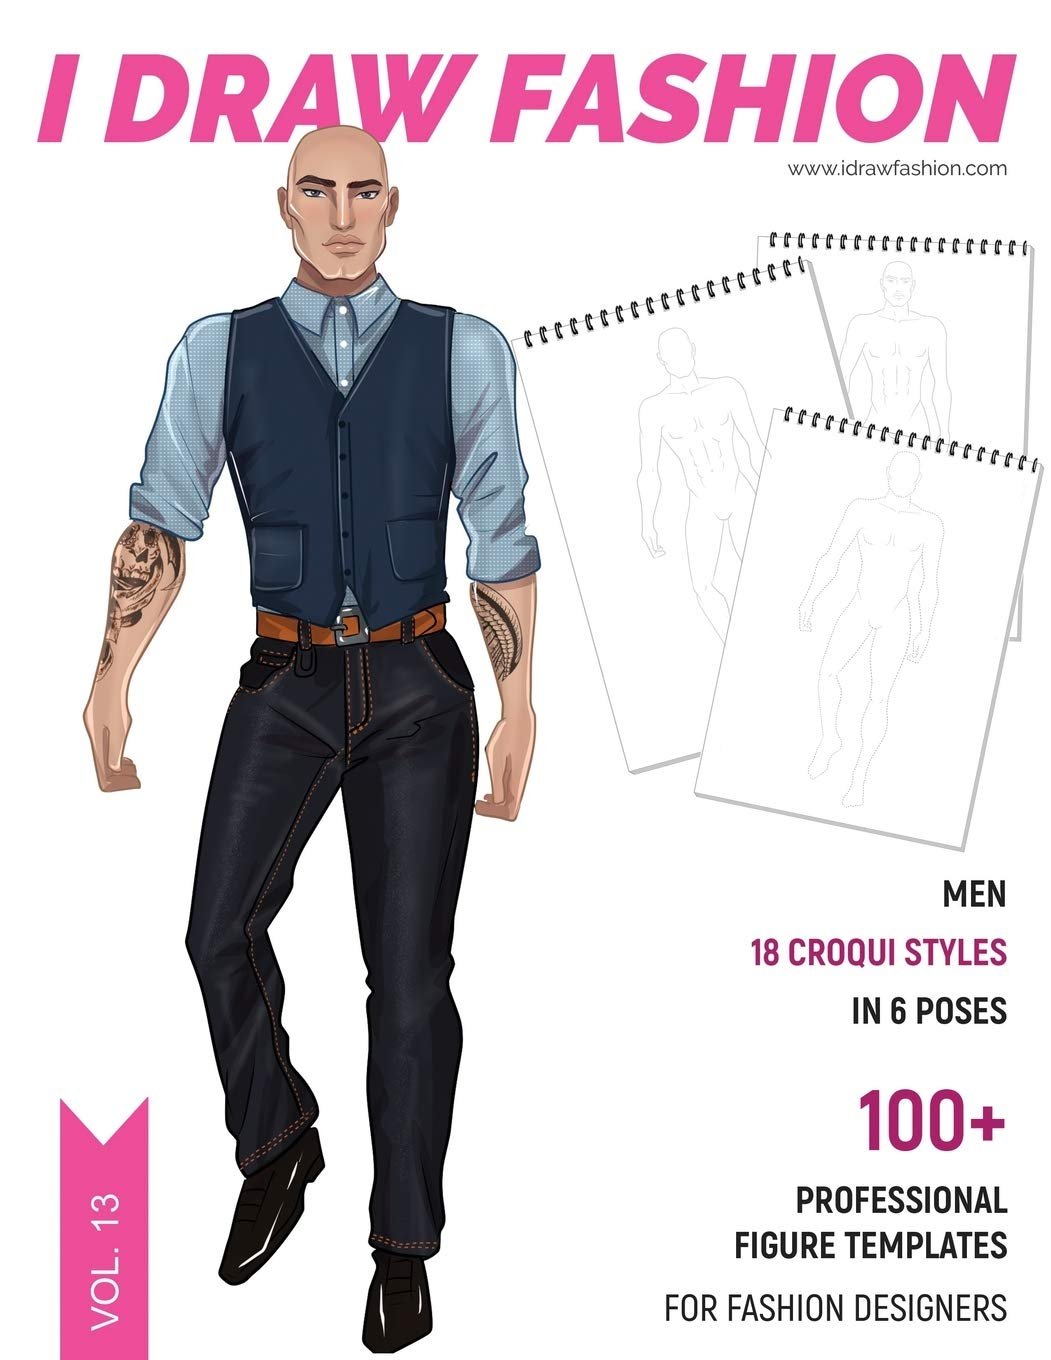 Men 100 Professional Figure Templates For Fashion Designers Fashion Sketchpad With 18 Croqui Styles In 6 Poses Fashion I Draw 9781699535202 Amazon Com Books